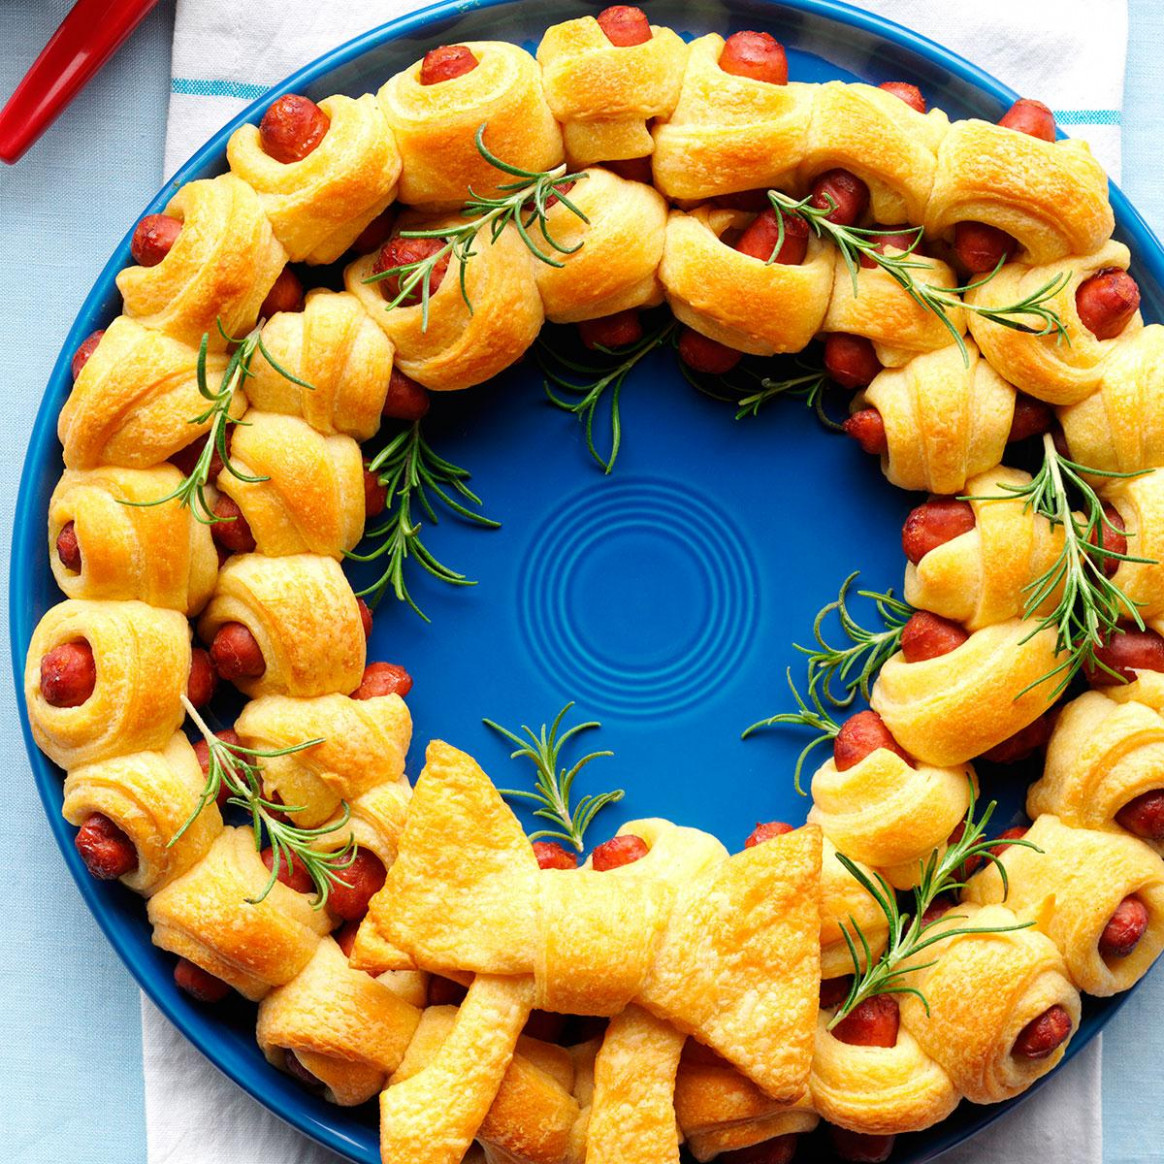 Ring of Piggies Recipe | Taste of Home - easy finger food recipes to make ahead